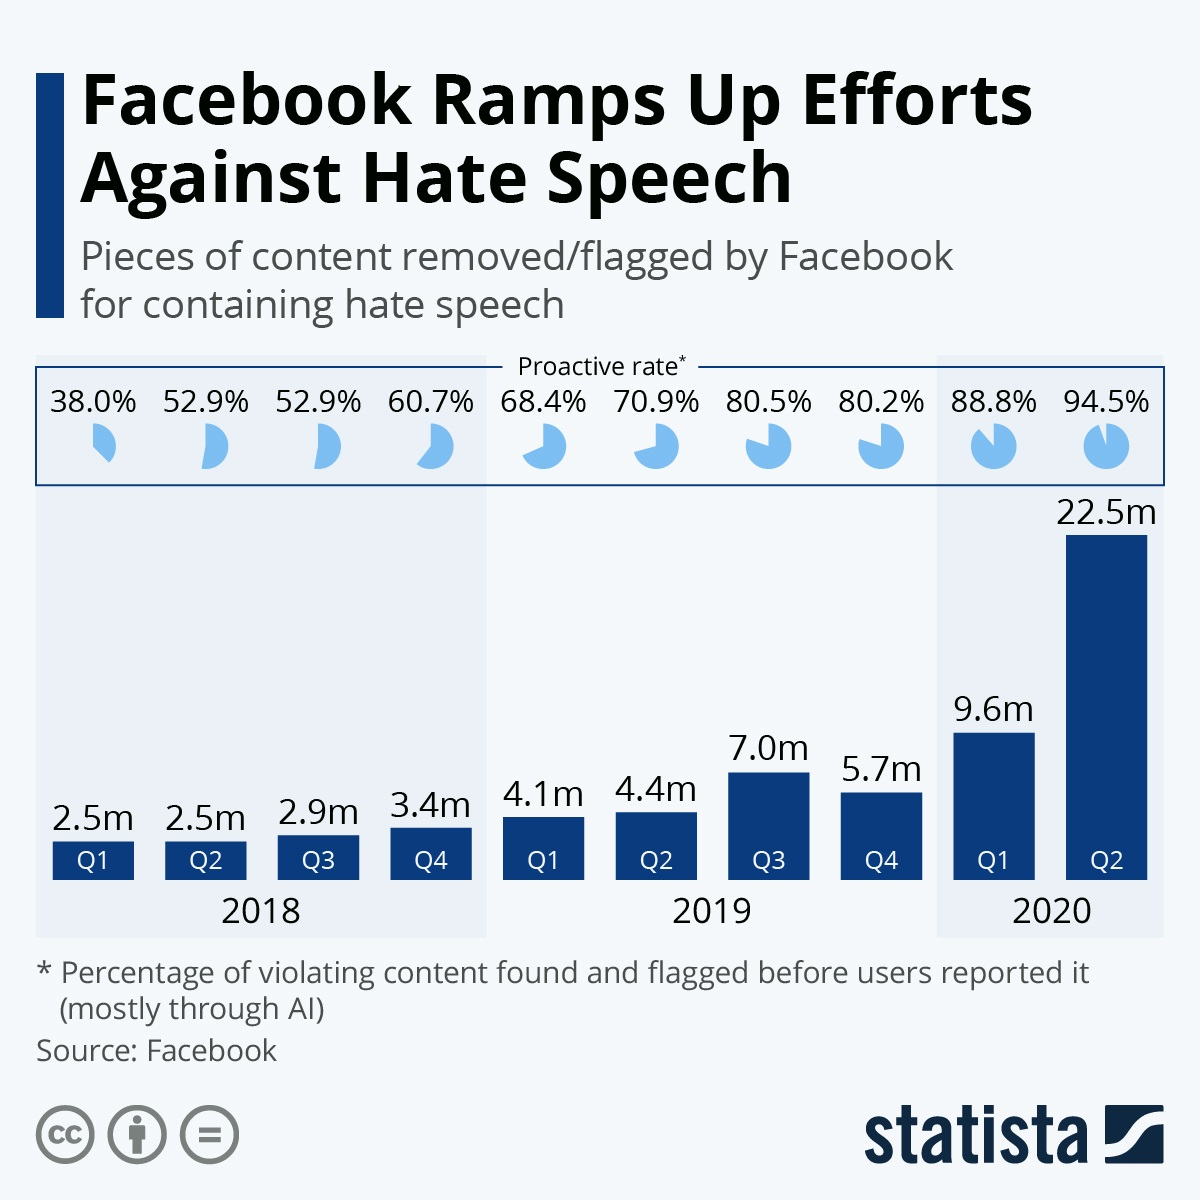 Facebook Ramps Up Efforts Against Hate Speech #Infographic